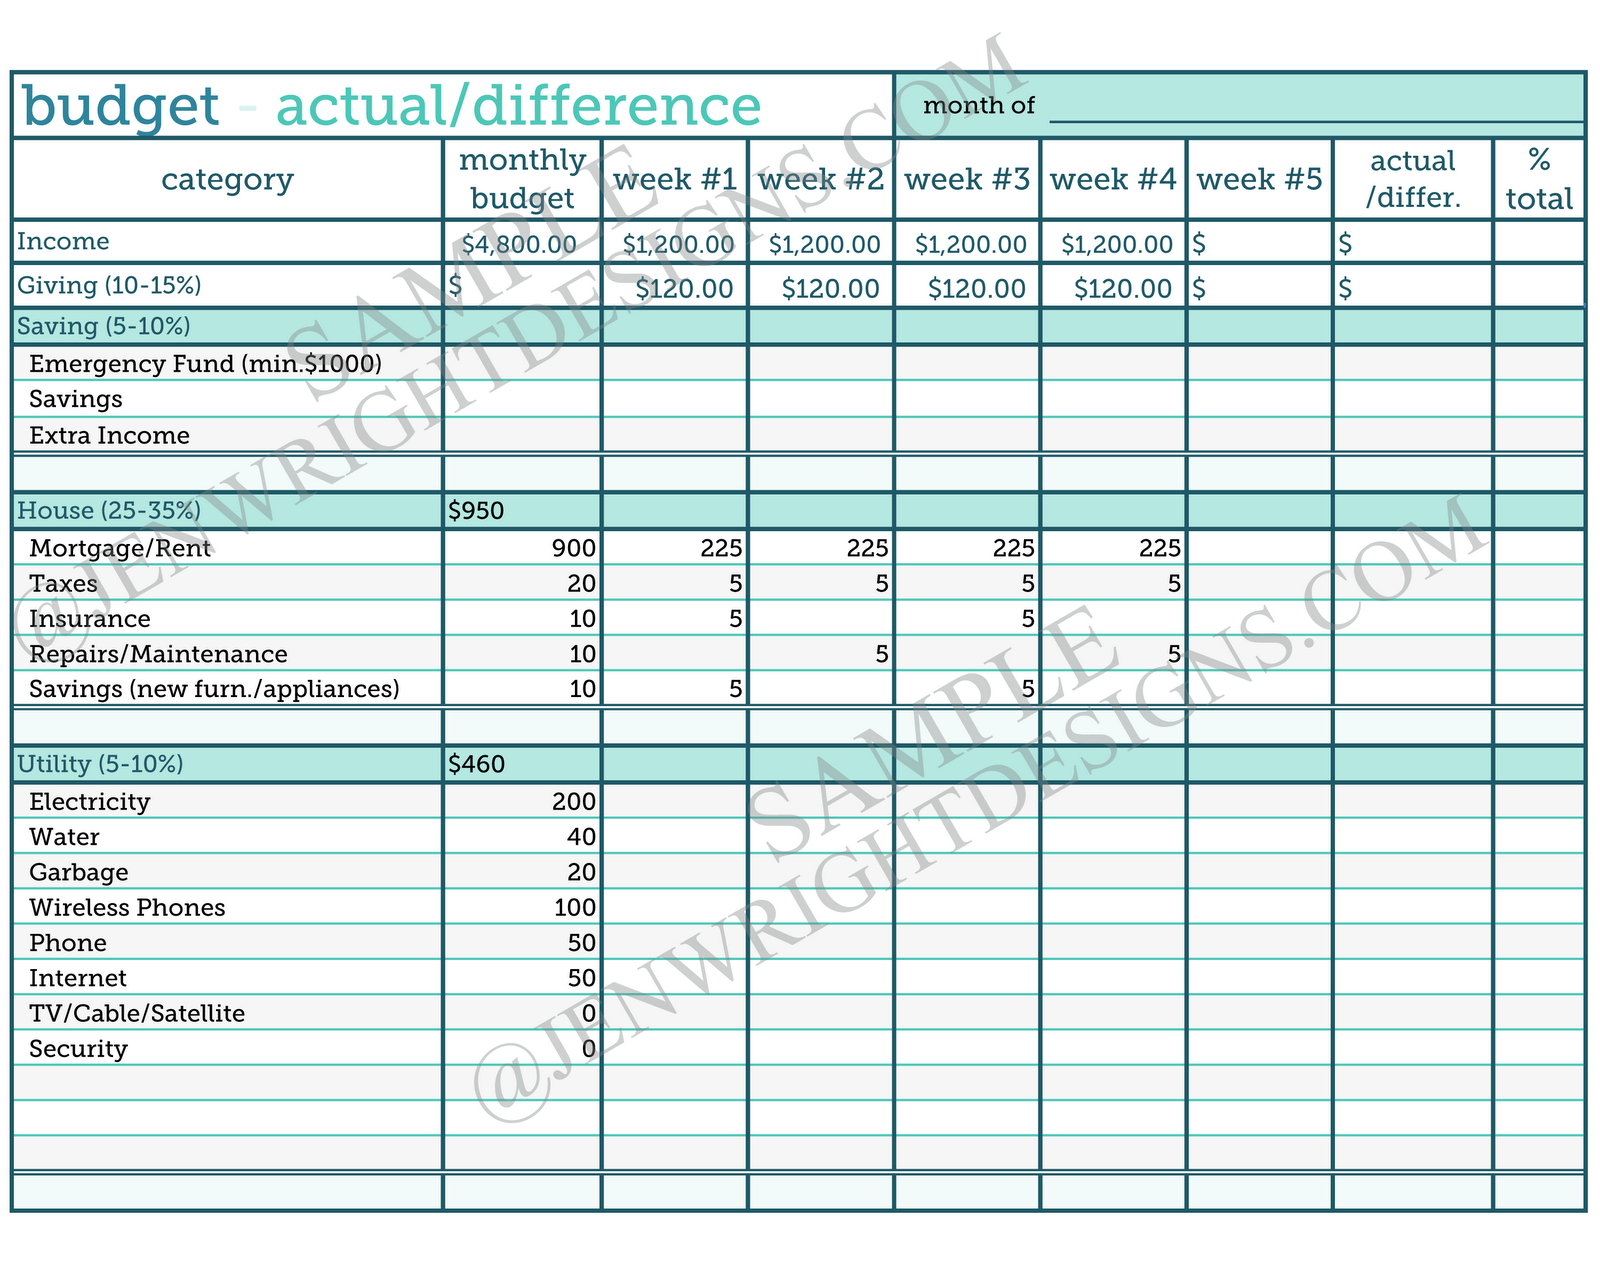 nursing home budget spreadsheet google spreadshee nursing